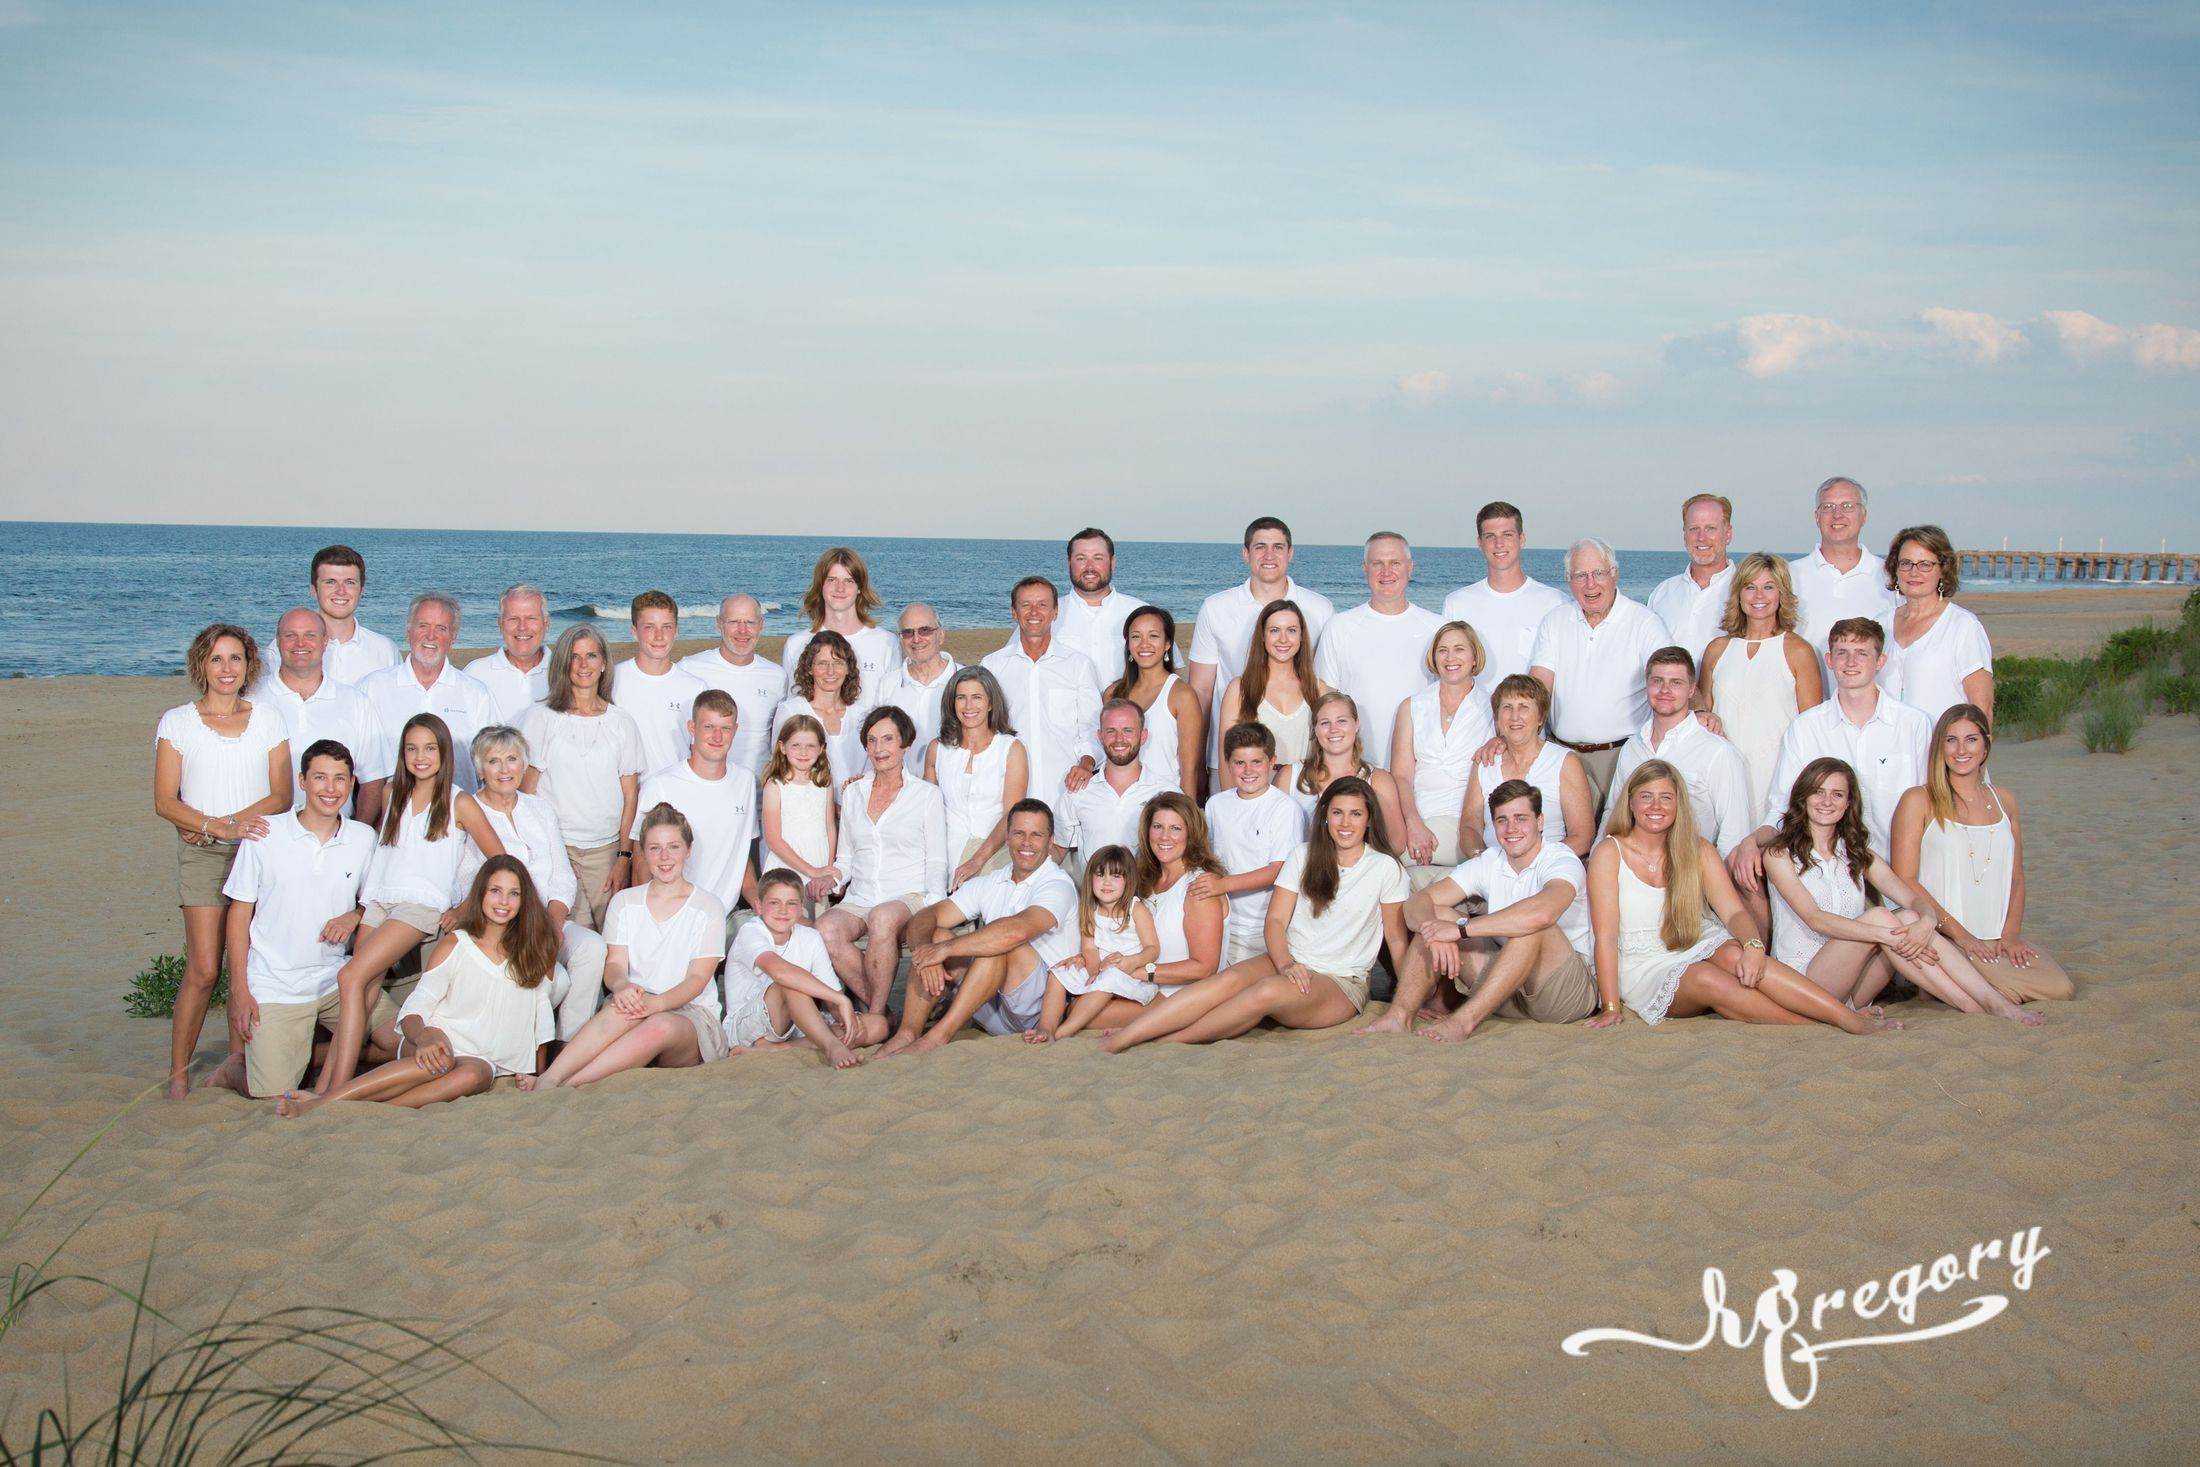 Masterson family reunion beach portrait